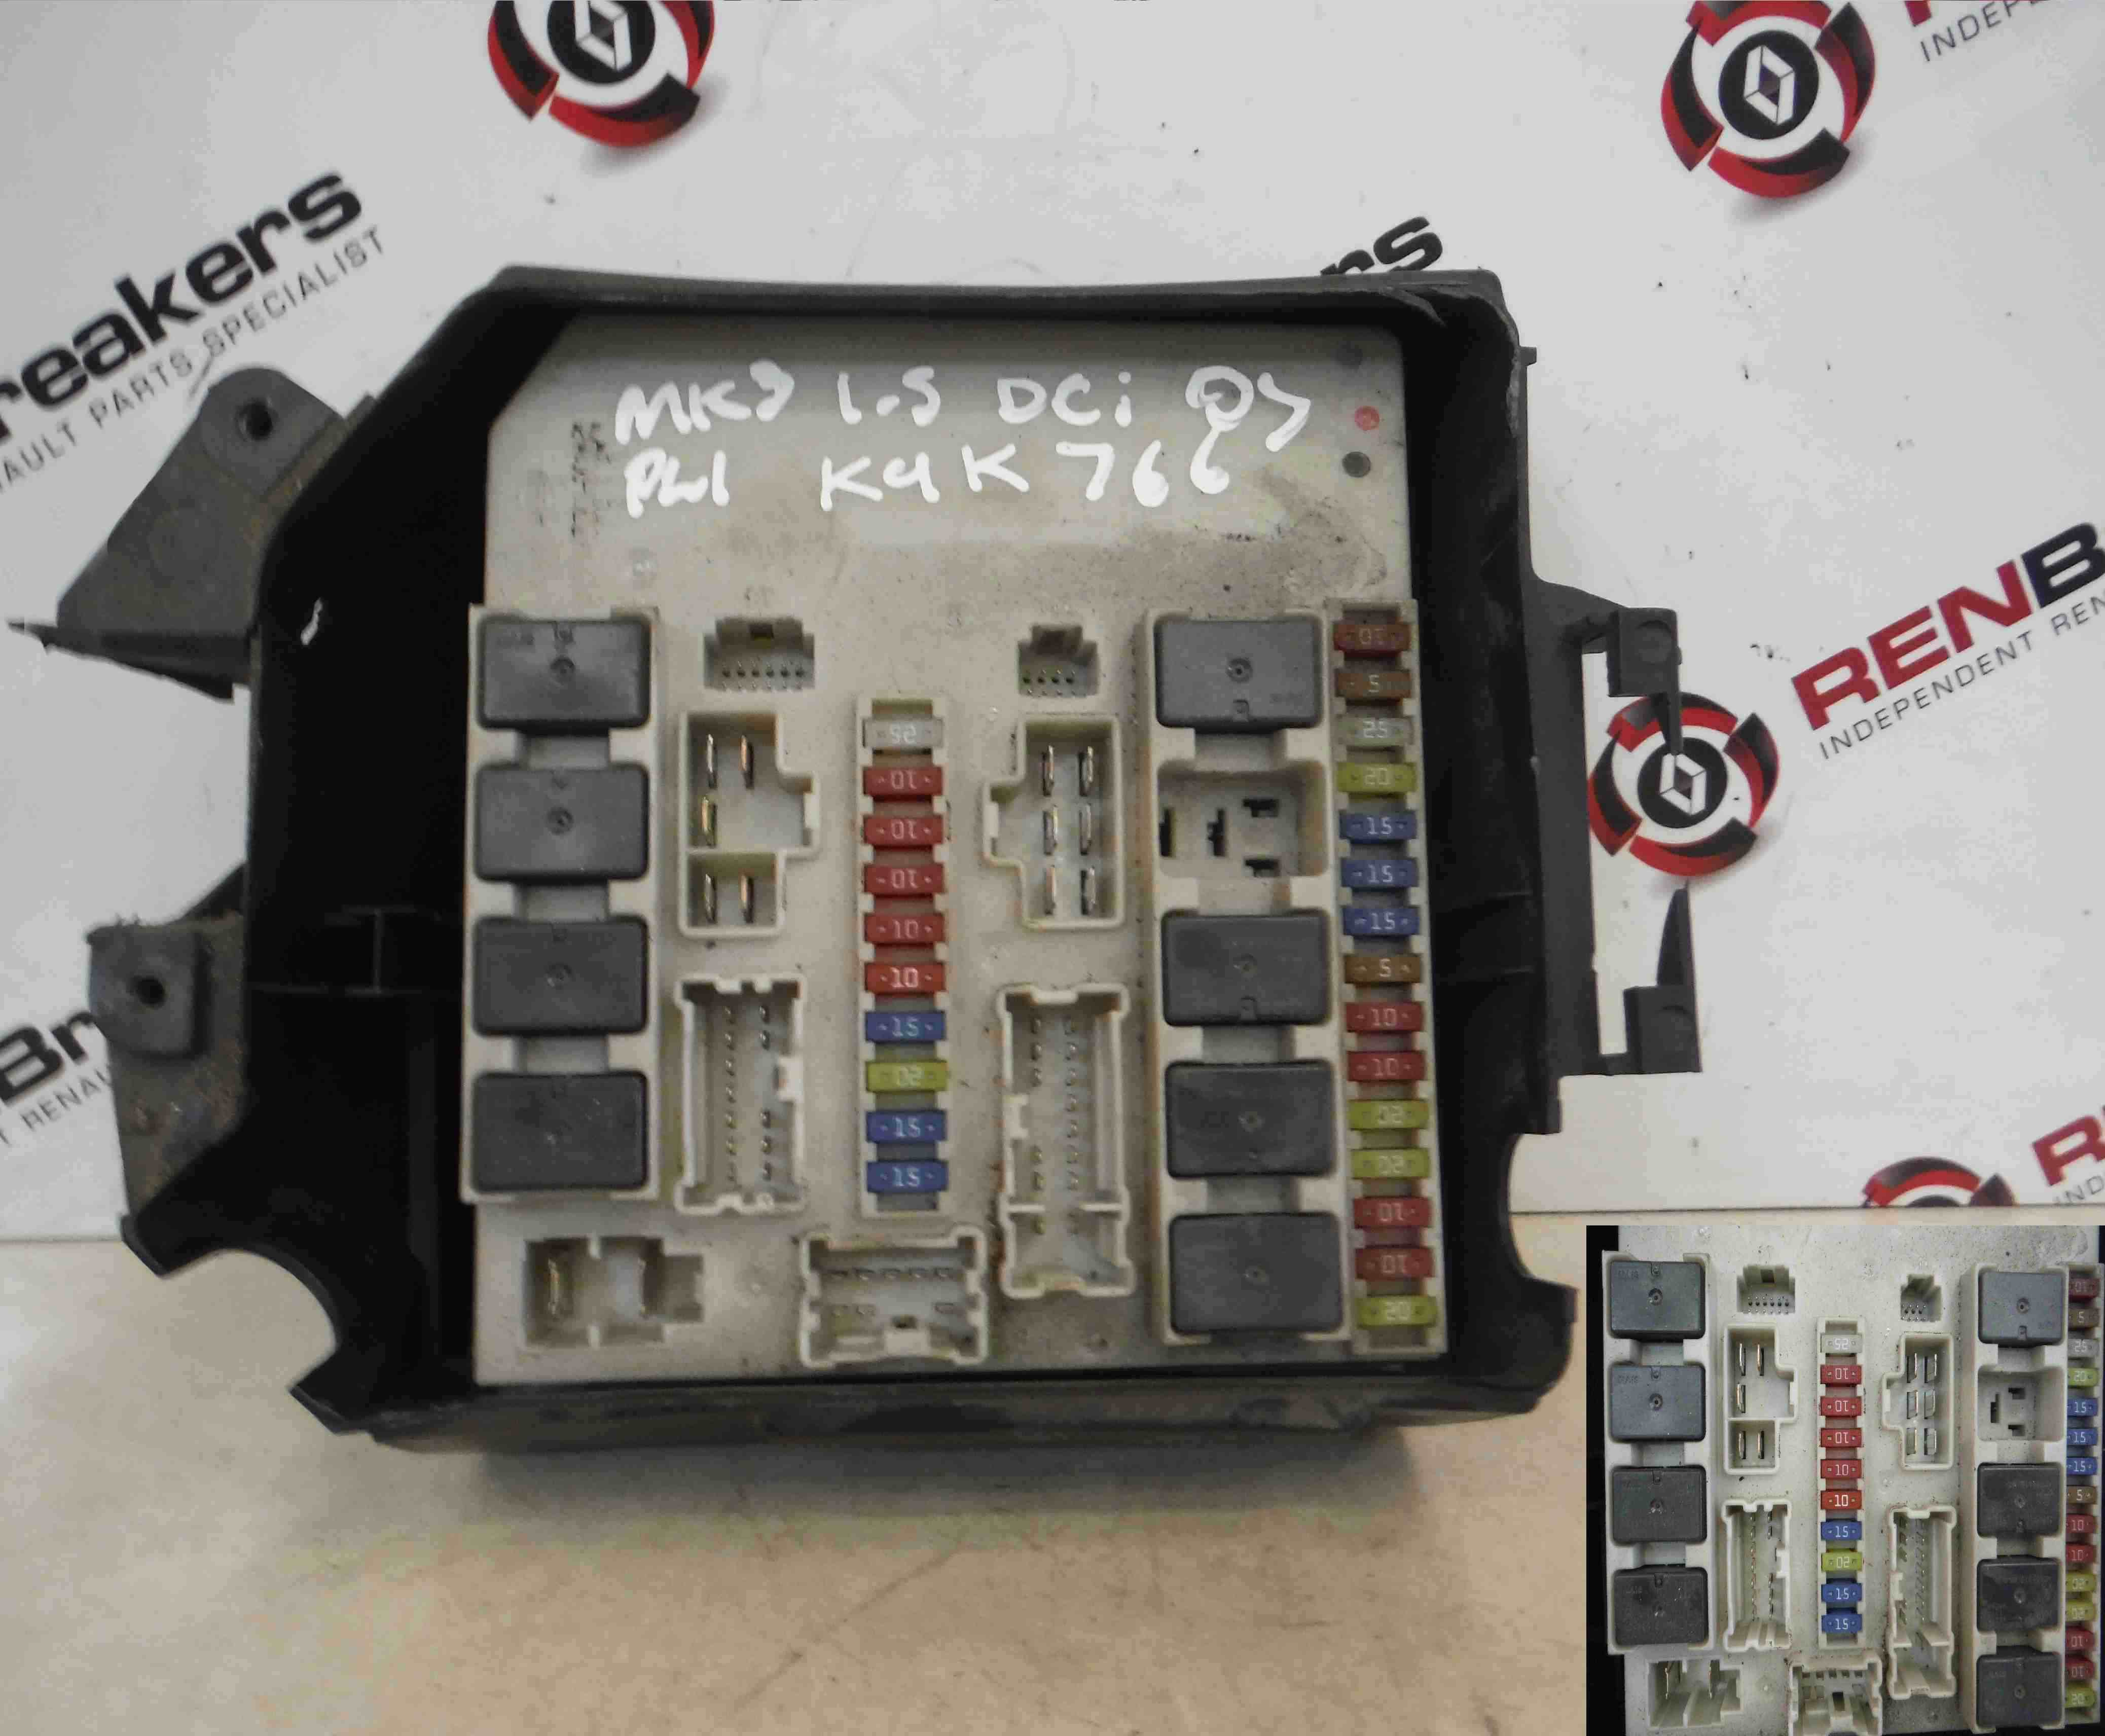 renault laguna fuse box diagram what is an electron dot clio mk3 2005-2009 engine bay upc - store breakers used car ...